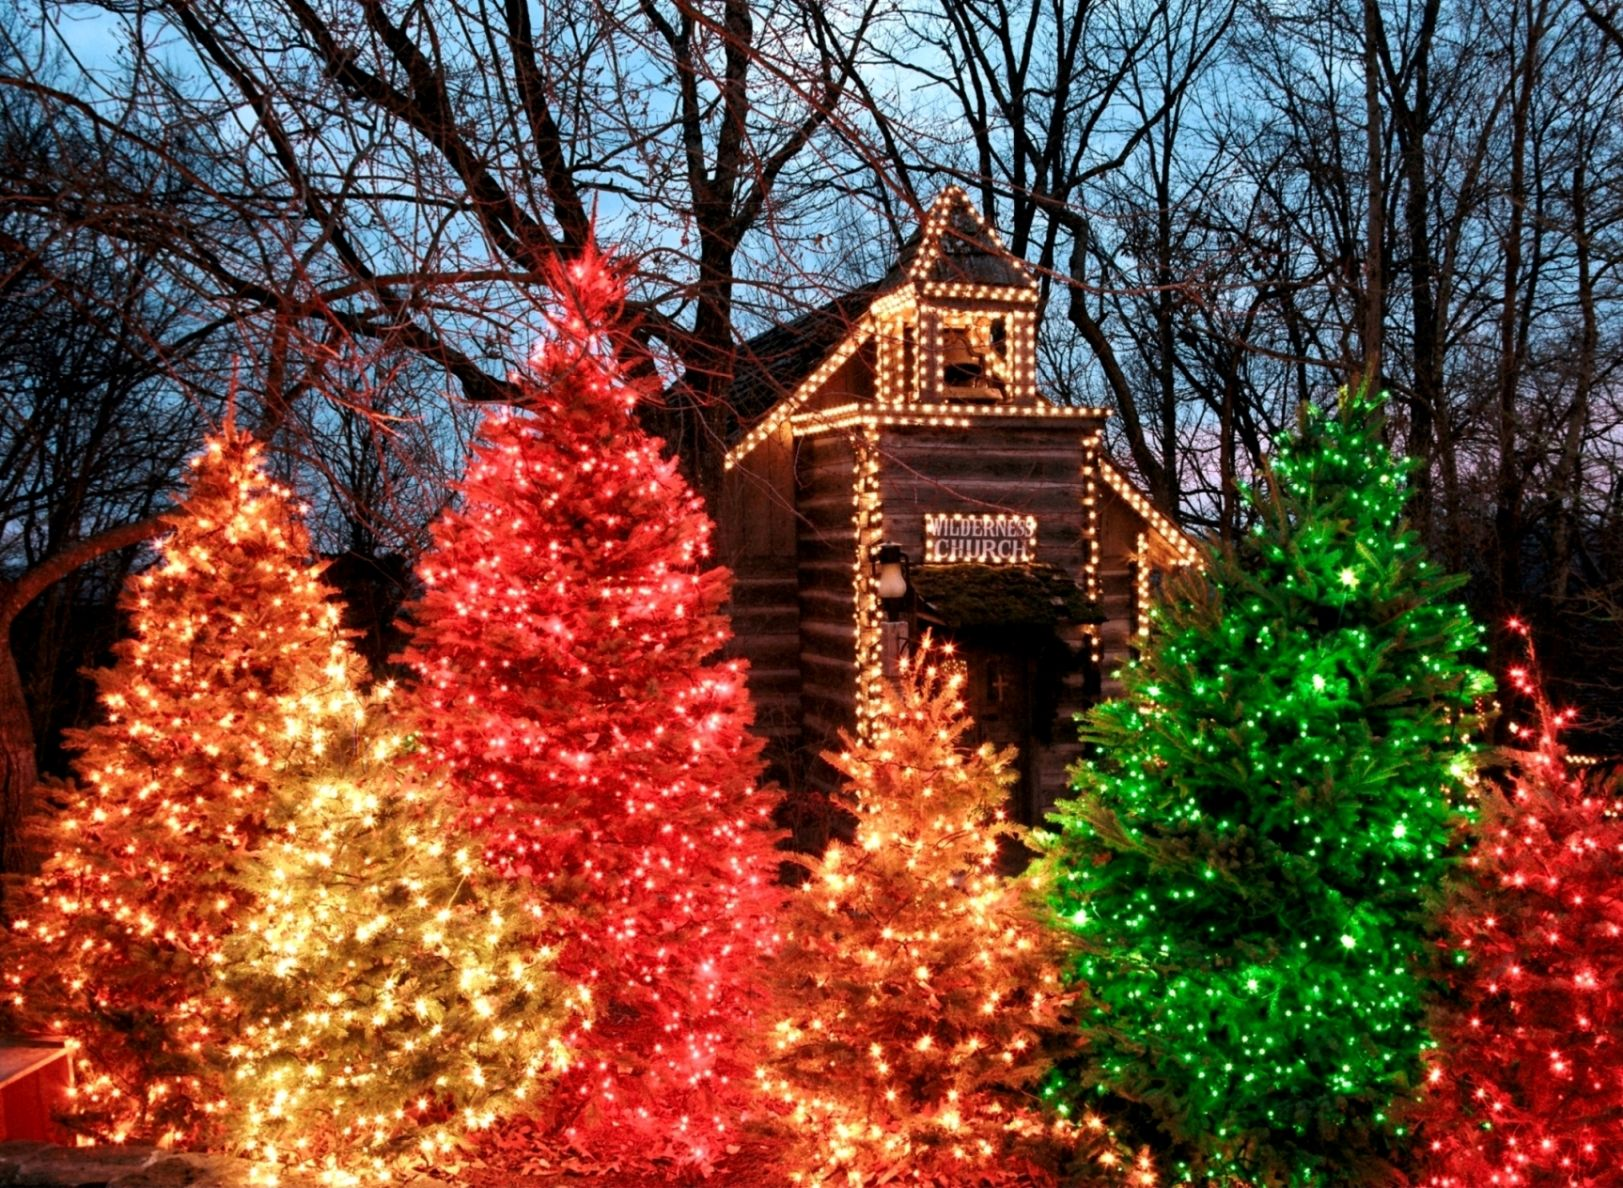 Christmas festival ideas for church - Christmas Trees At The Wilderness Church At Silver Dollar City In Branson Mo